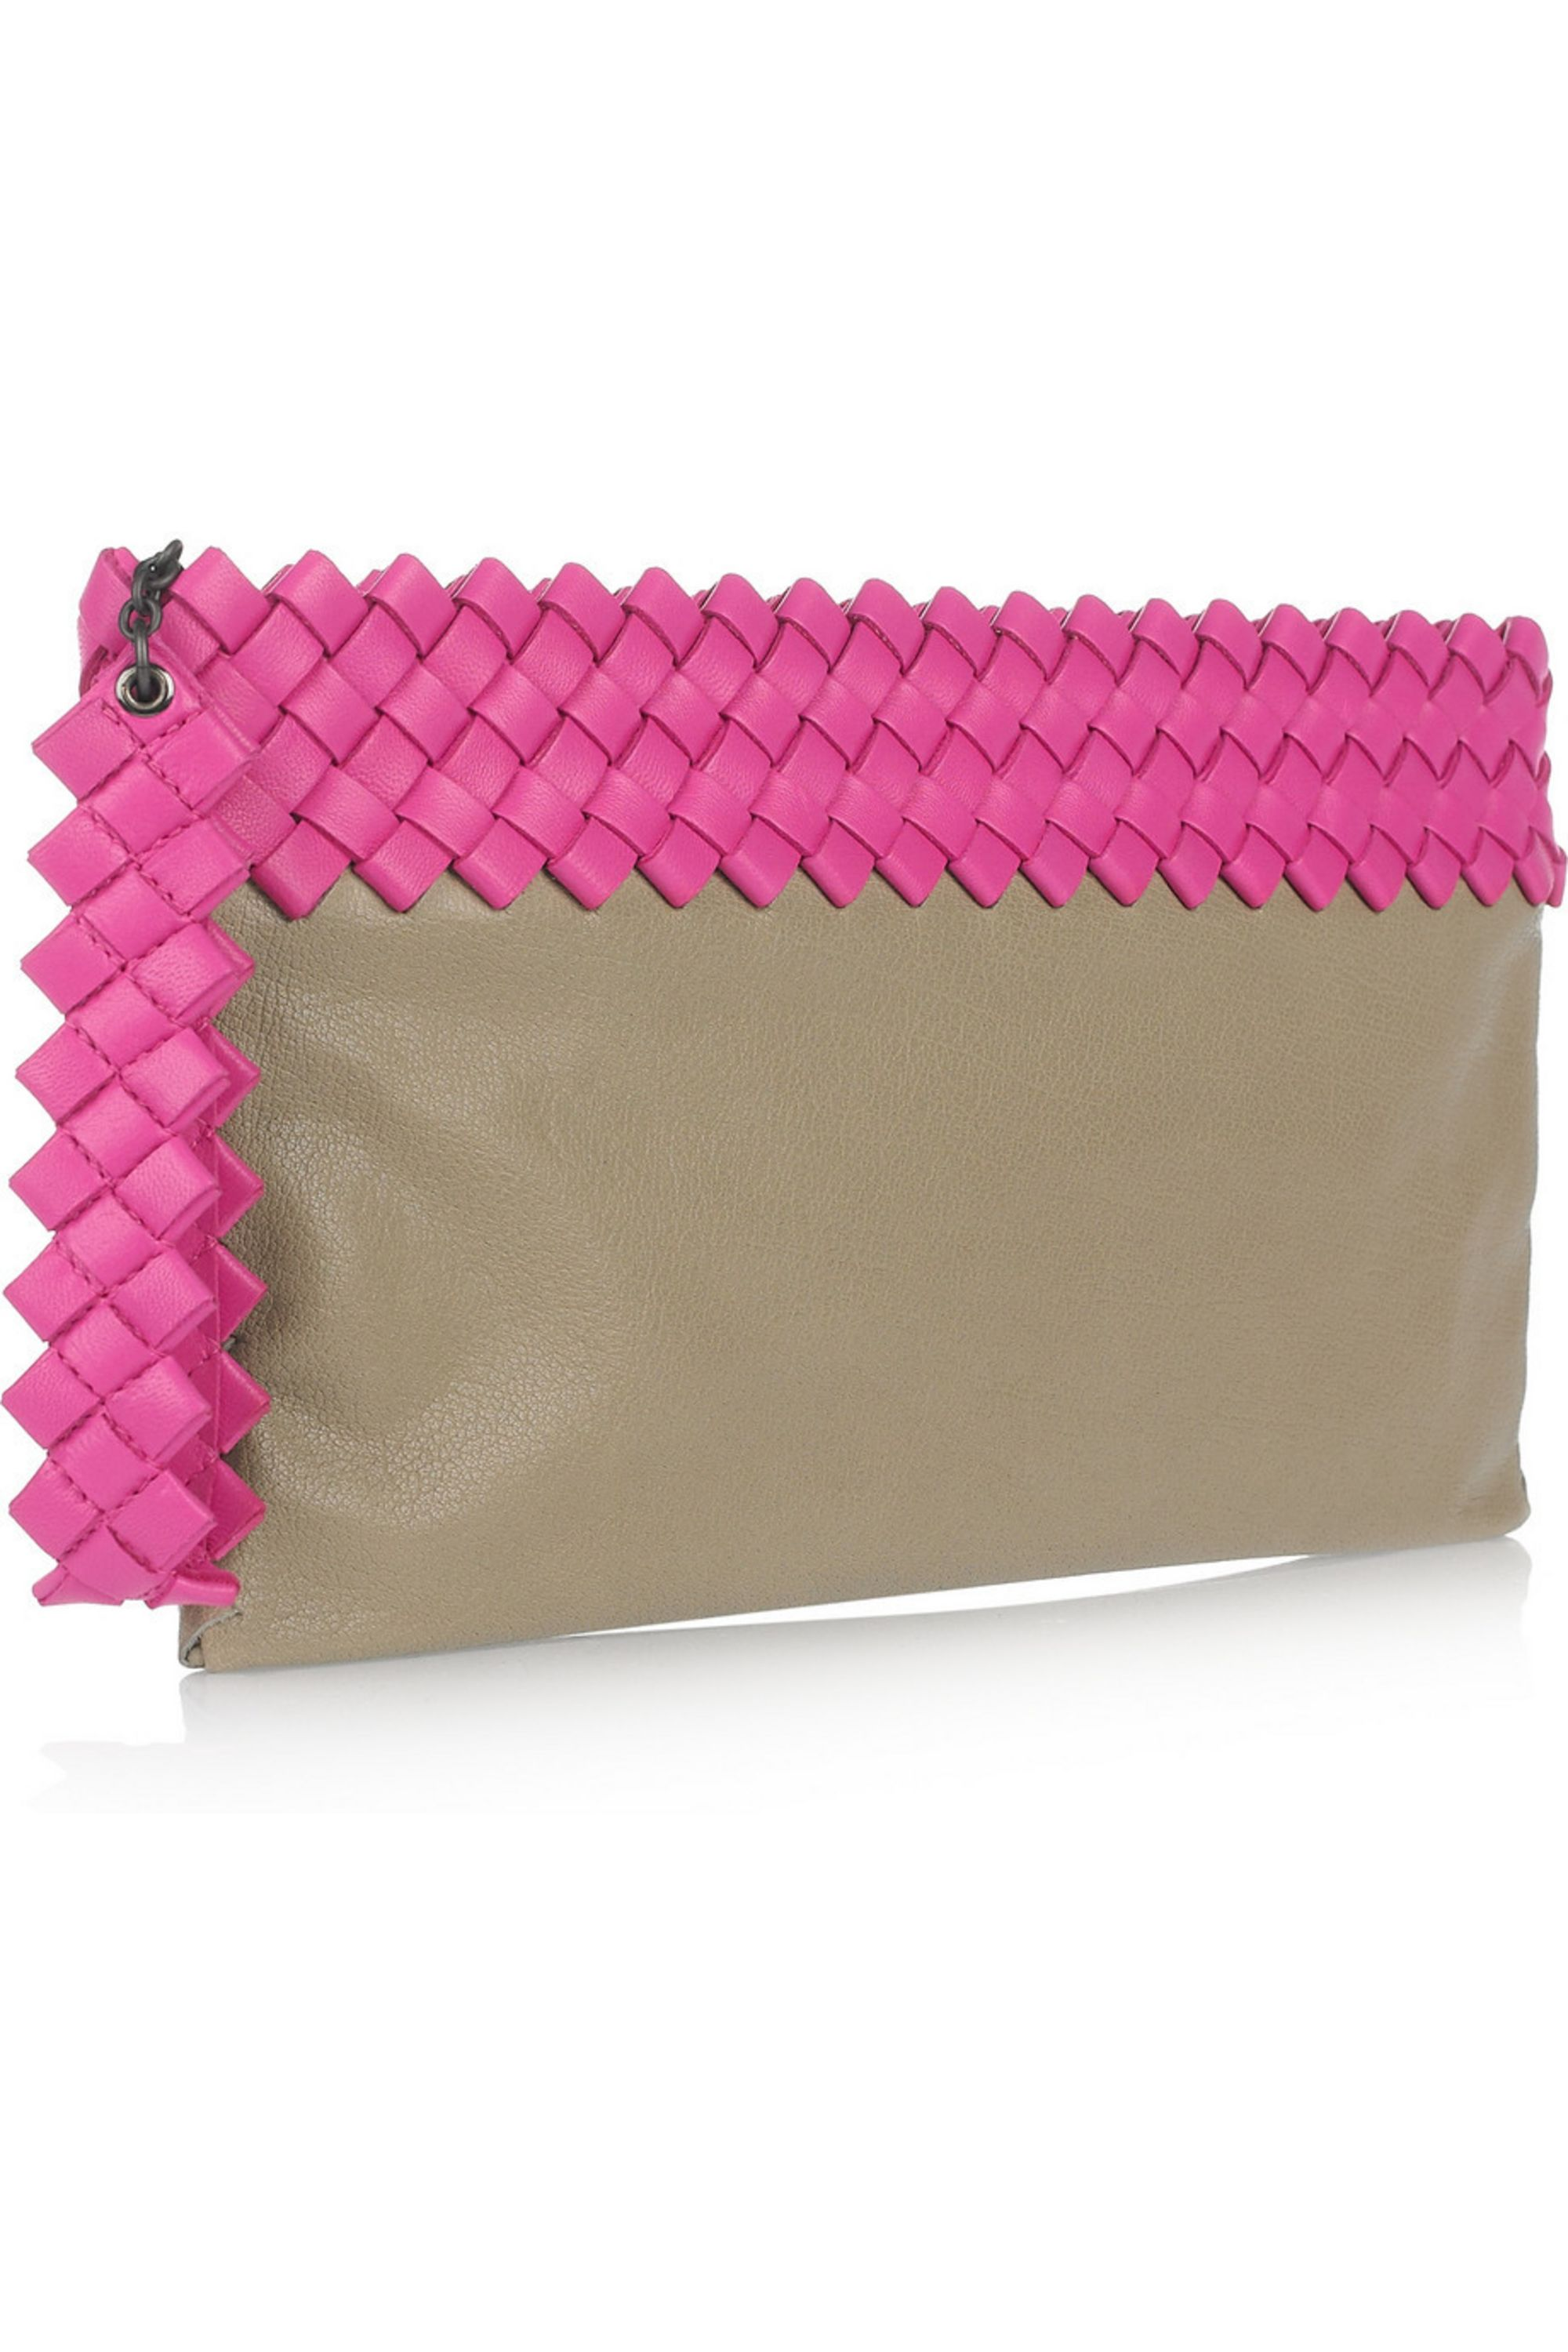 Bottega Veneta Intrecciato-trimmed two-tone leather clutch